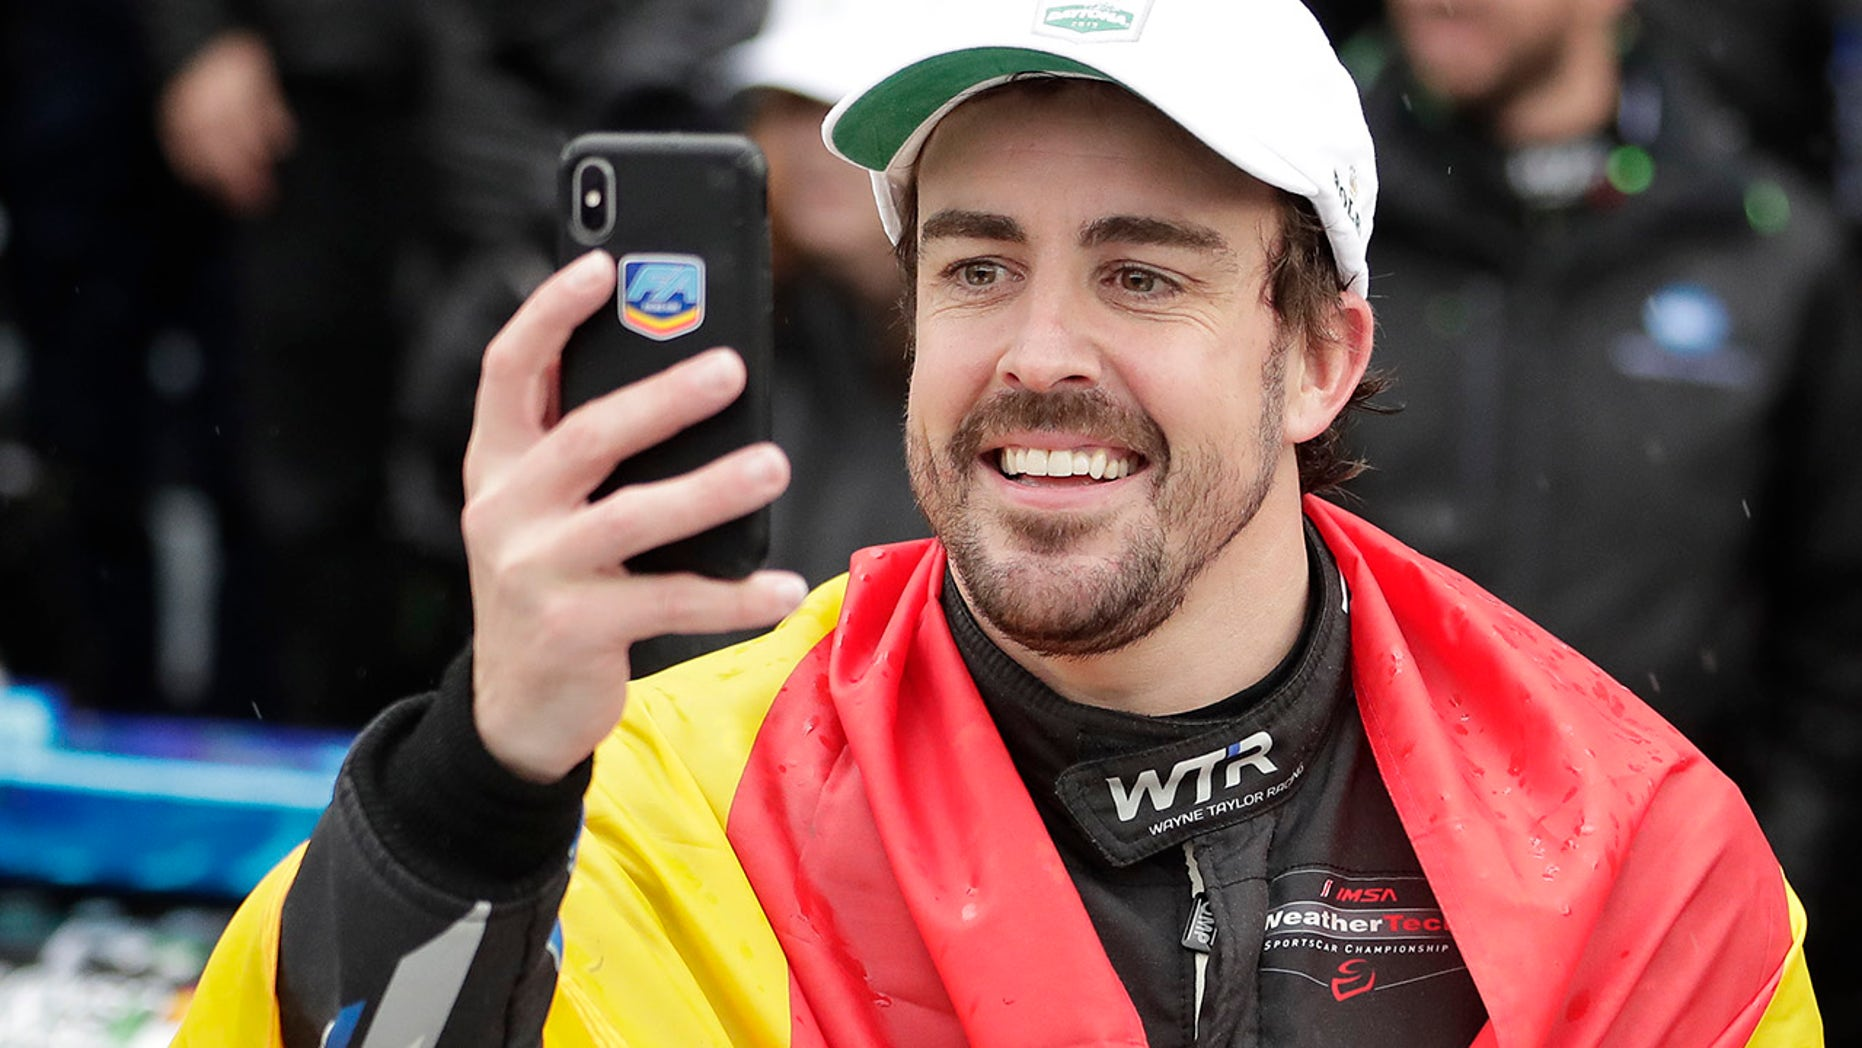 Alonso is coming off a victory at the 24 Hours of Daytona.